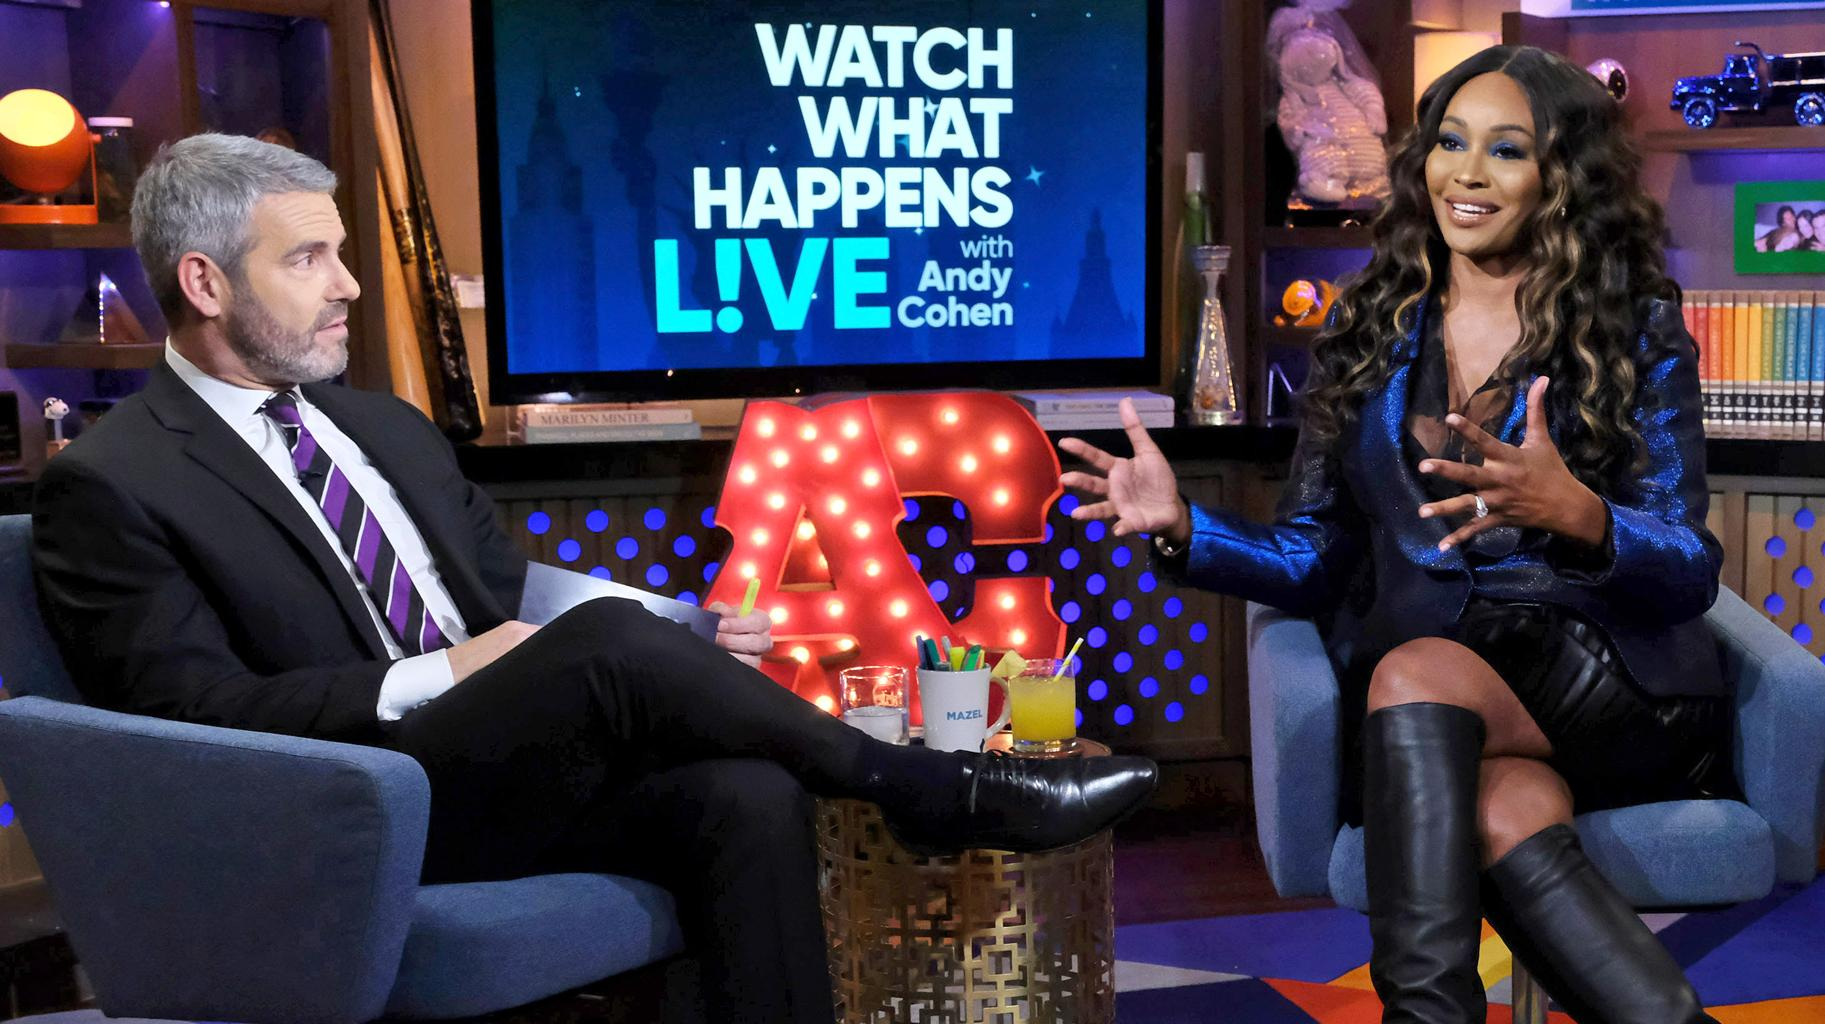 Cynthia Bailey Addresses Andy Cohen's Coronavirus Diagnosis - She And Other RHOA Ladies Who Were Guests On His Show Are In Danger